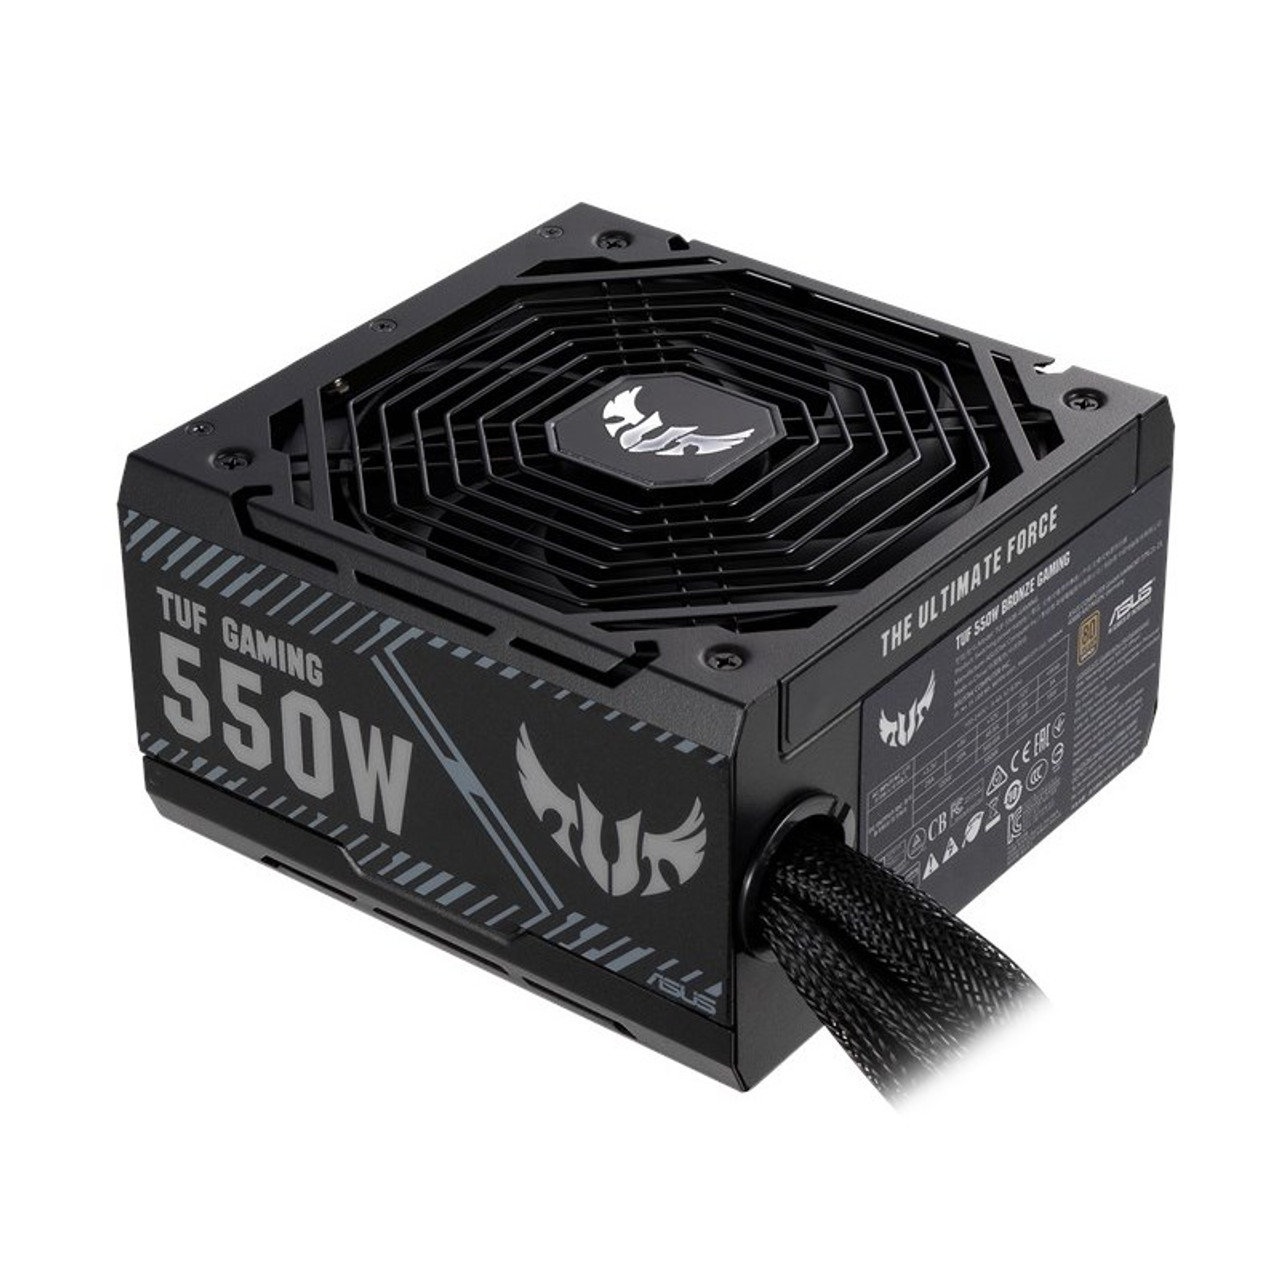 Image for Asus TUF Gaming 550W 80+ Bronze Non Modular Power Supply CX Computer Superstore